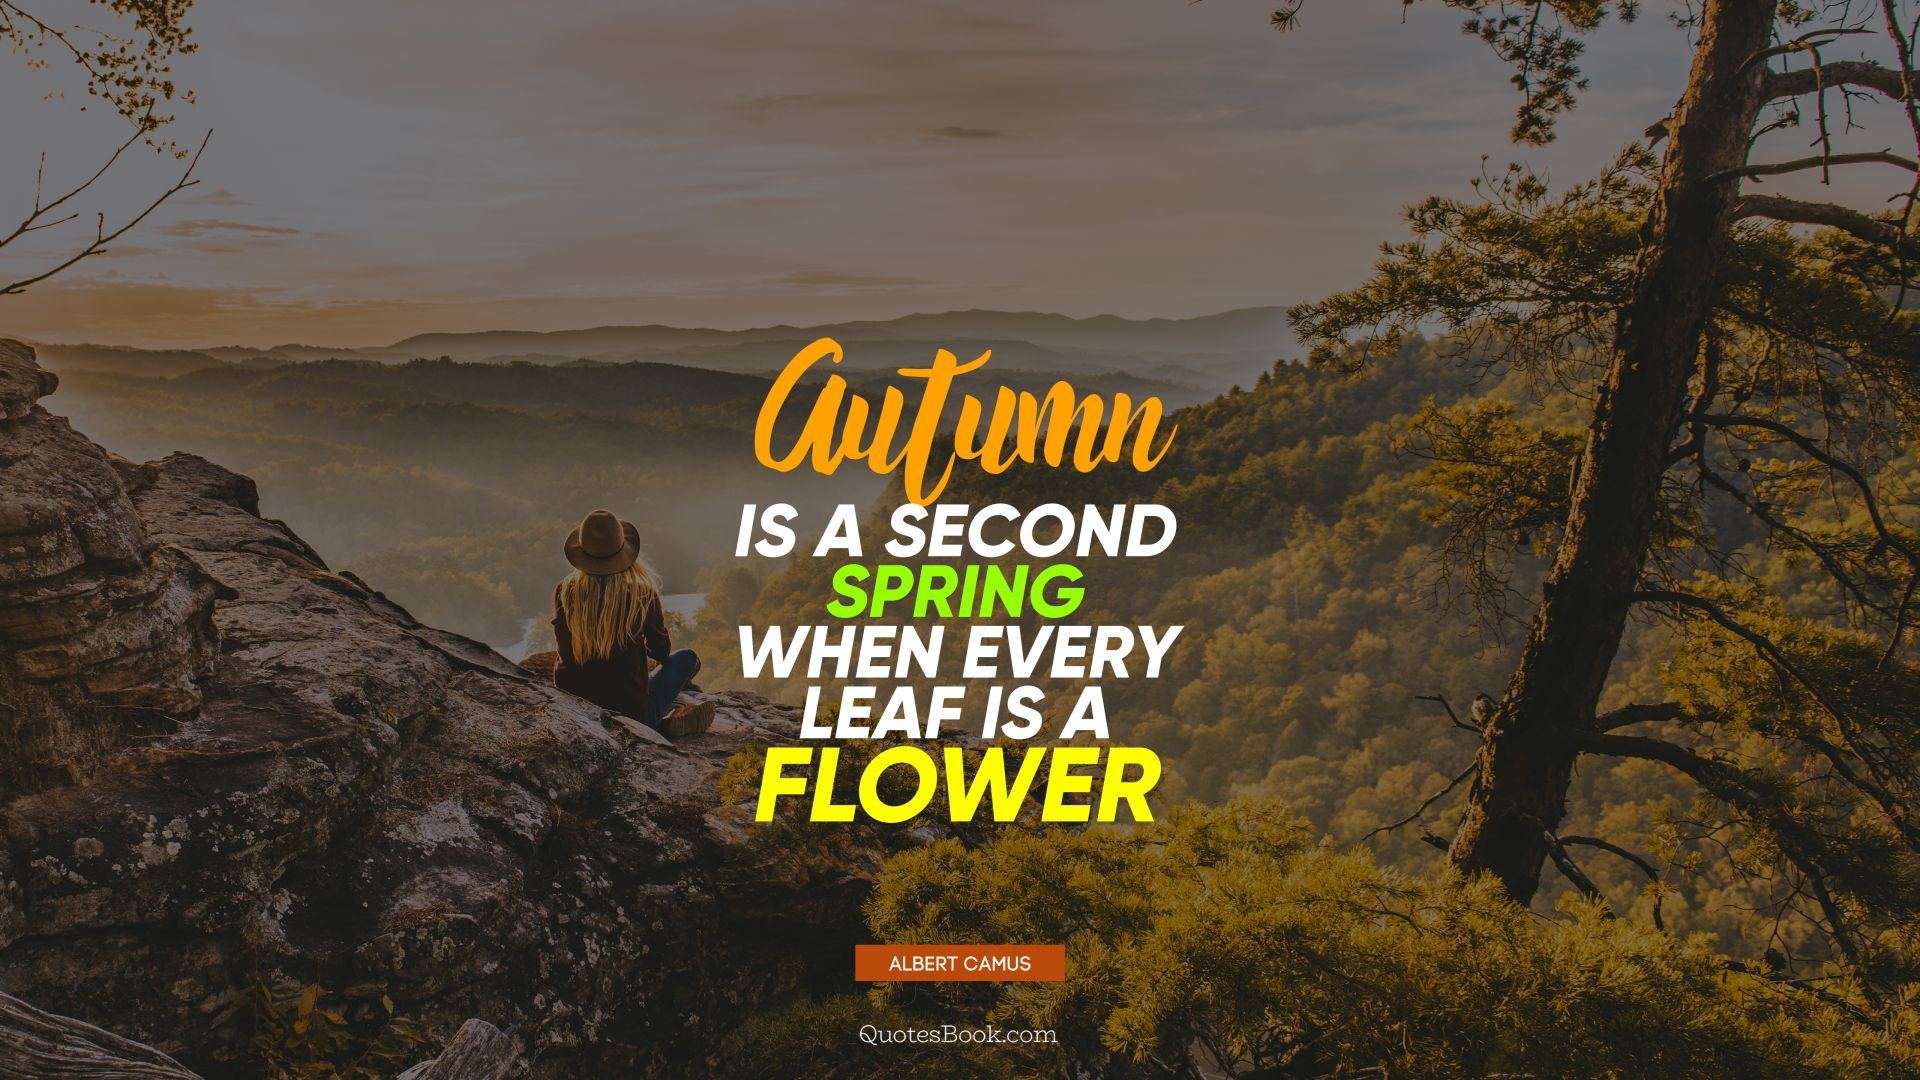 Autumn is a second spring when every leaf is a flower. - Quote by Albert Camus